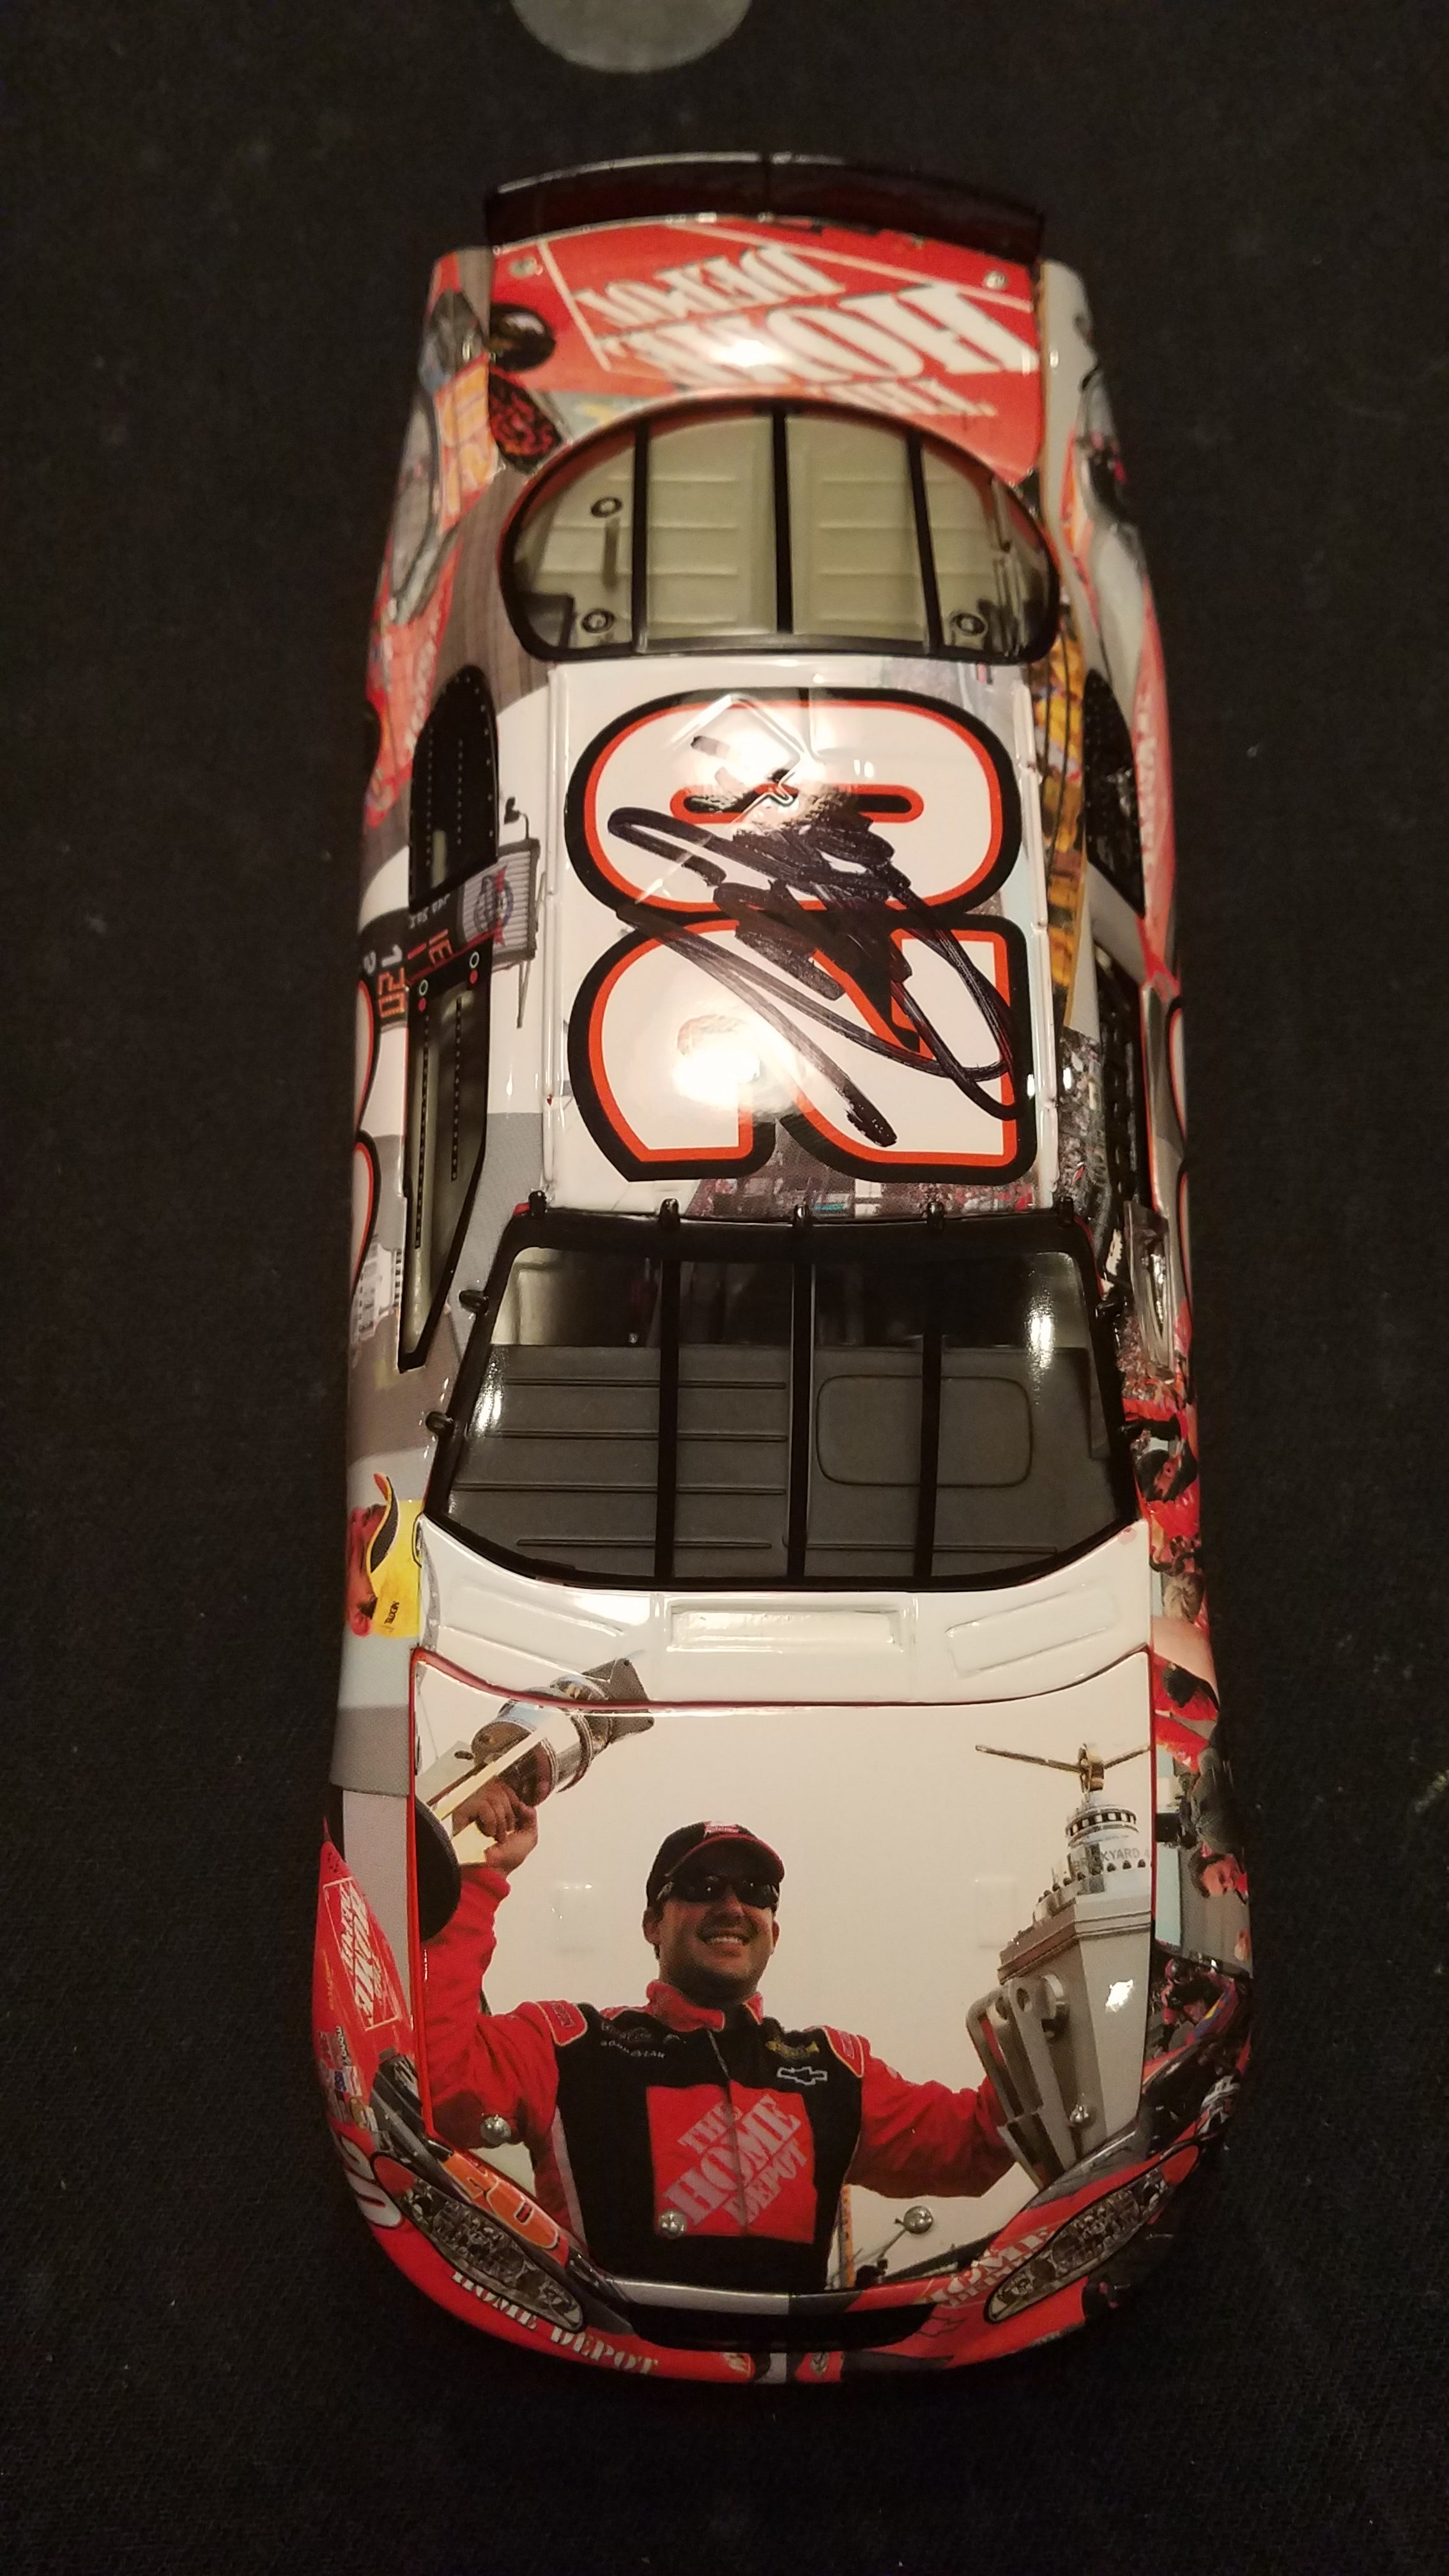 Autographed Tony Stewart Monte Carlo Nascar Champion 2005 Home Depot 1:24 Diecast in Original Box